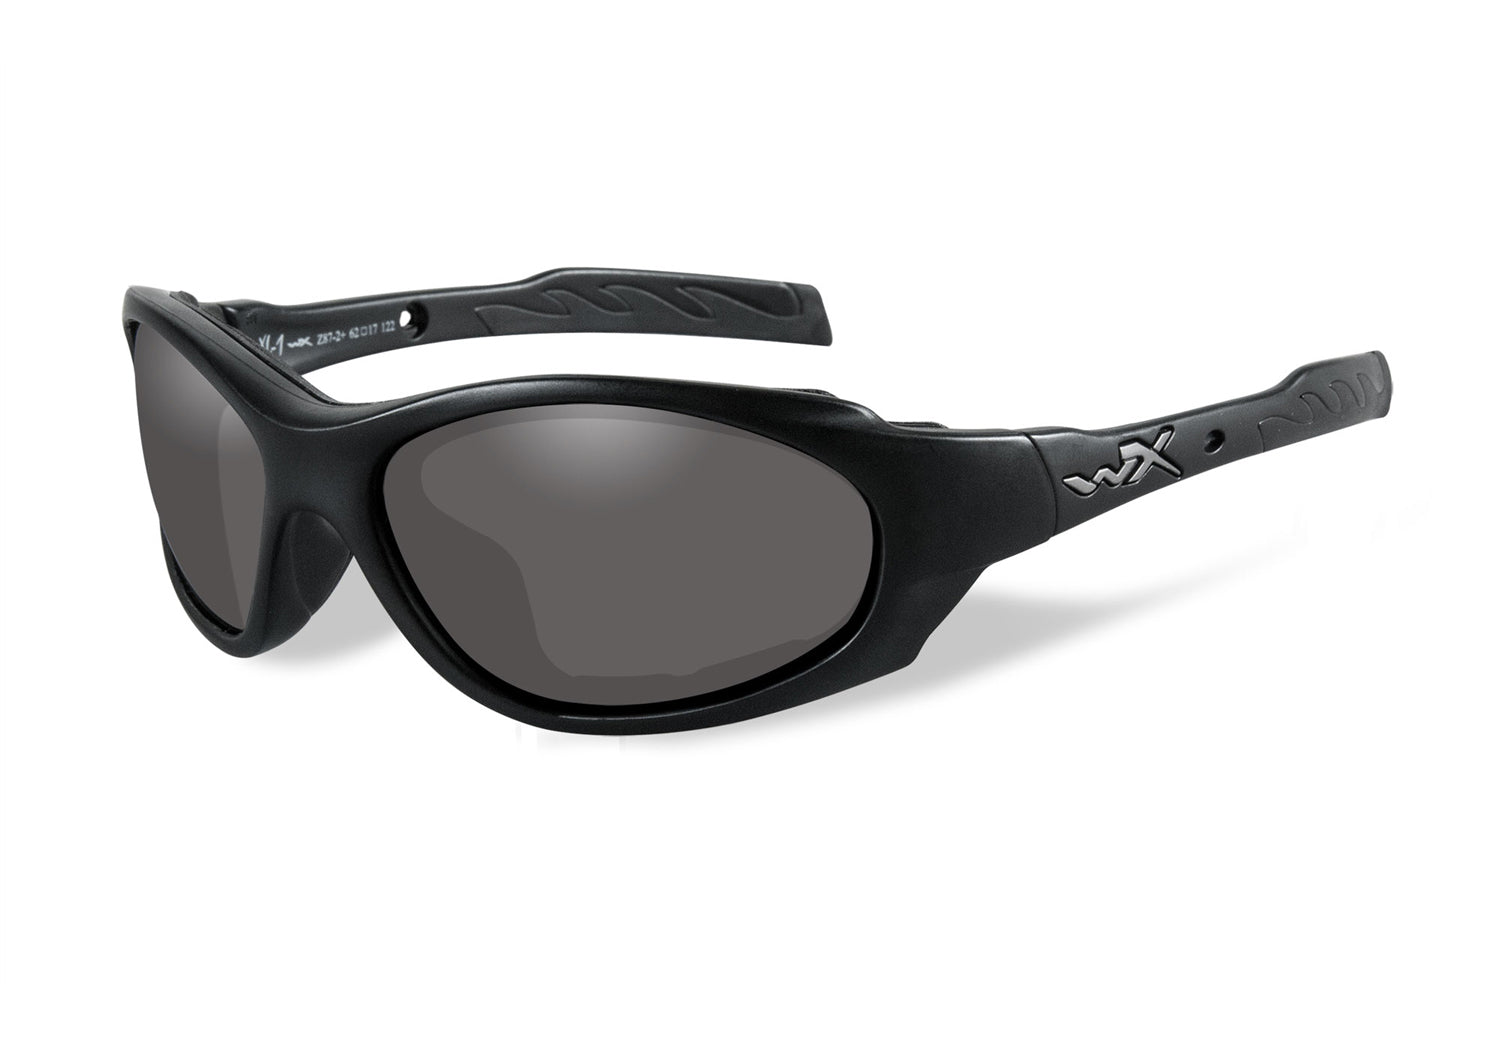 Wiley X XL-1 Advanced Prescription Sunglasses